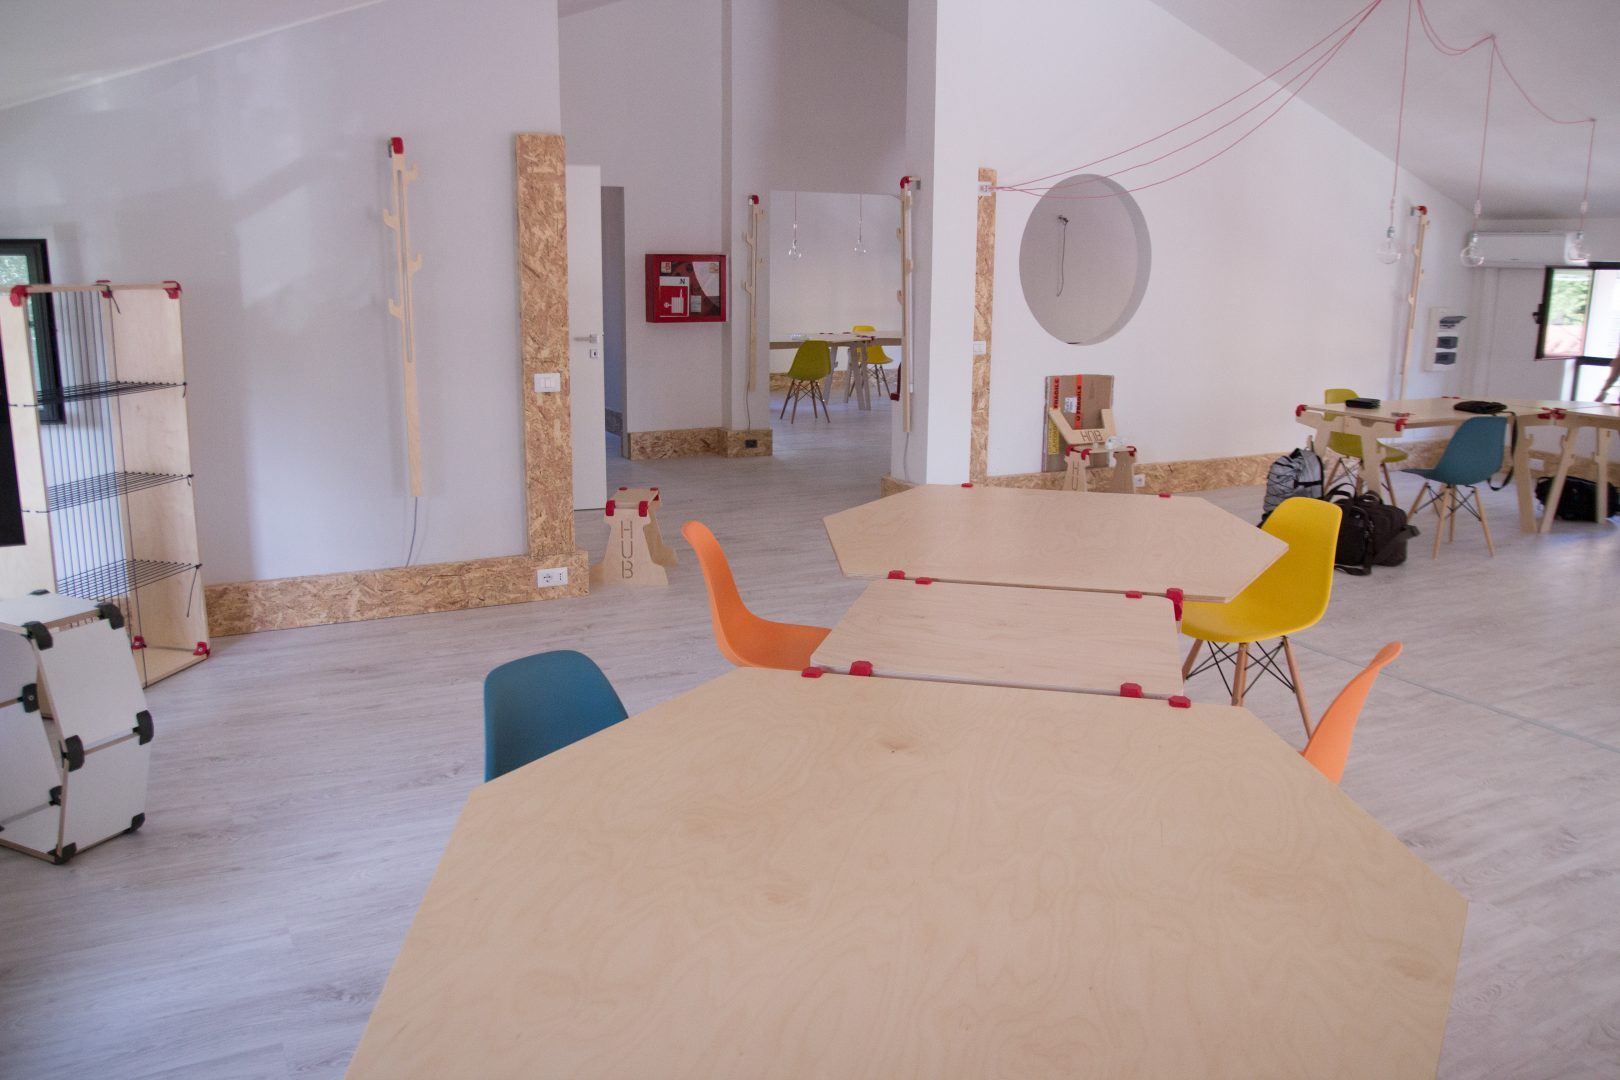 Impact Hub - The place where the furniture changes along with your project